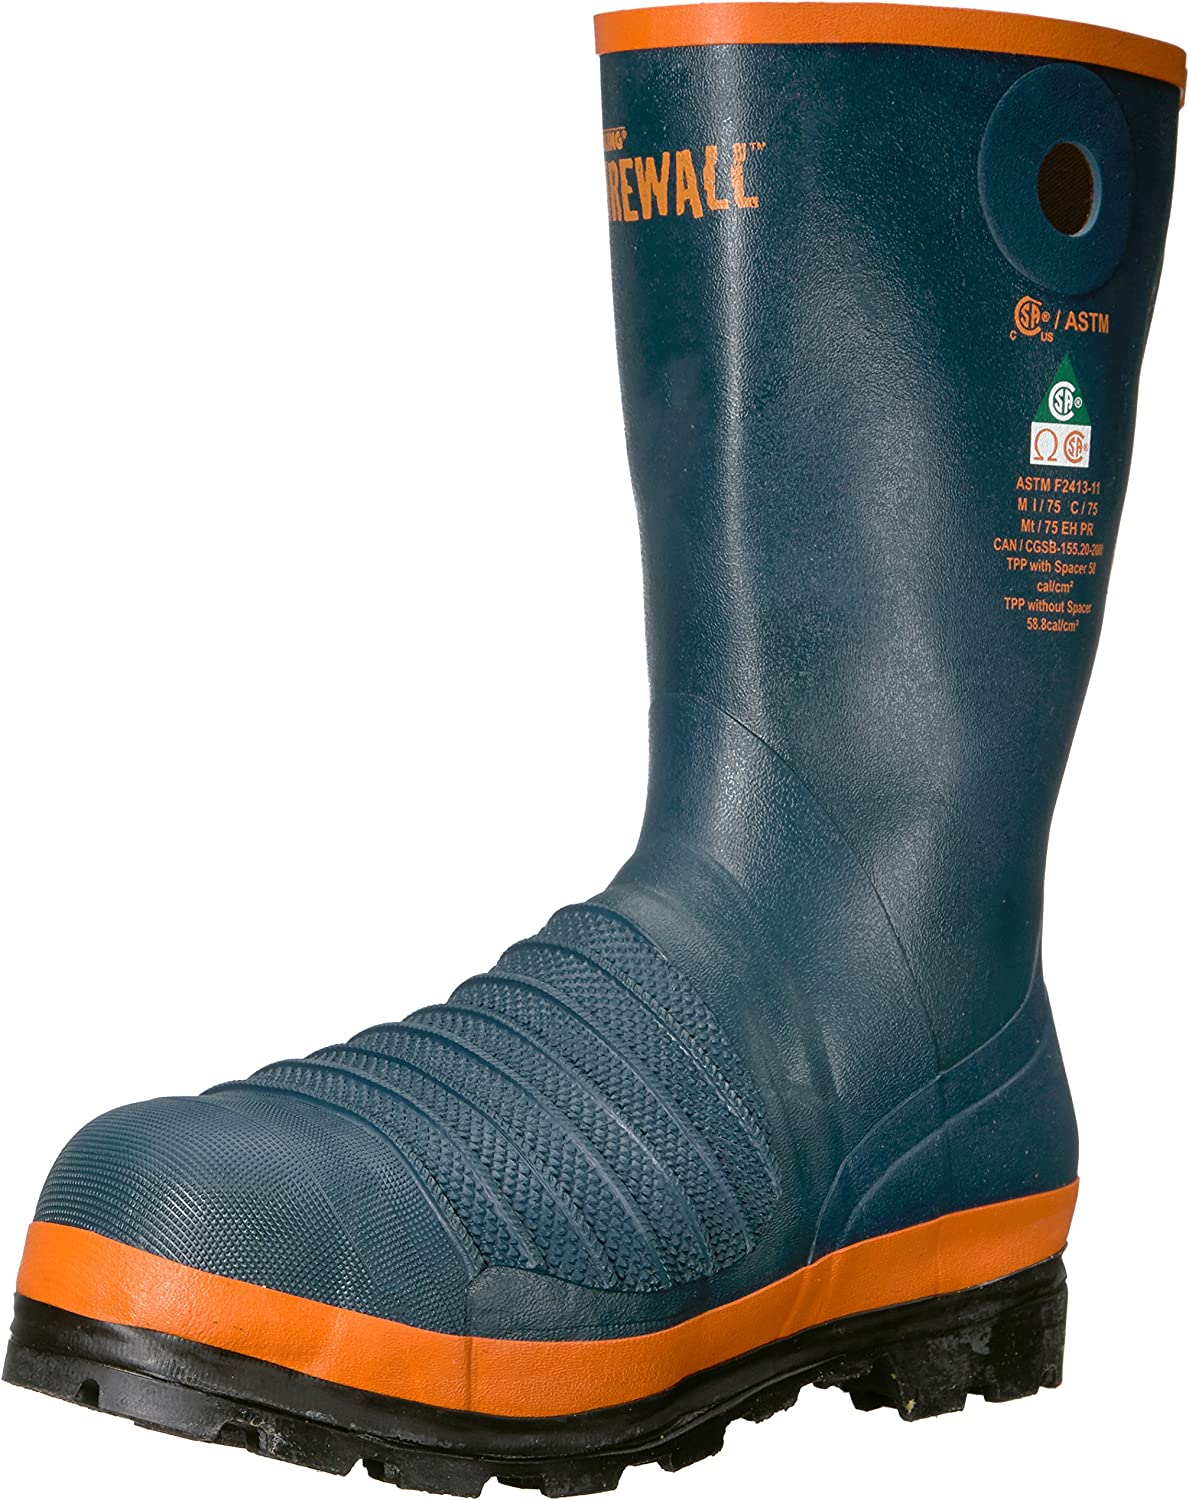 Viking herr FirewallTM Rigger Boot, Steel Toe and and and Plate Fire and Safety Boot  topp varumärke